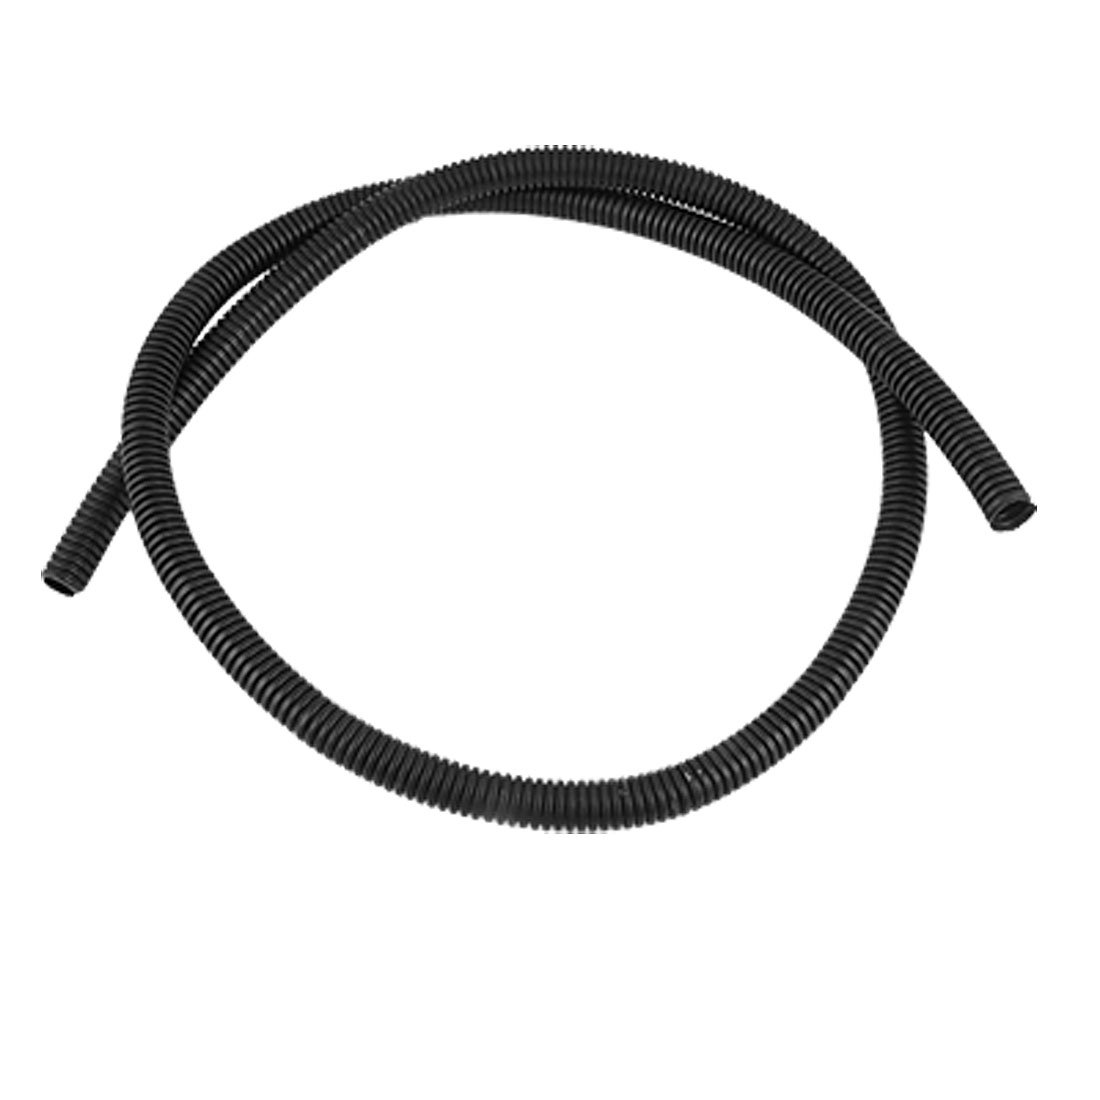 1m Black 13mm Diameter Flexible Corrugated Tube Electric Wire Wiring Conduit Home Depot Diy Tools